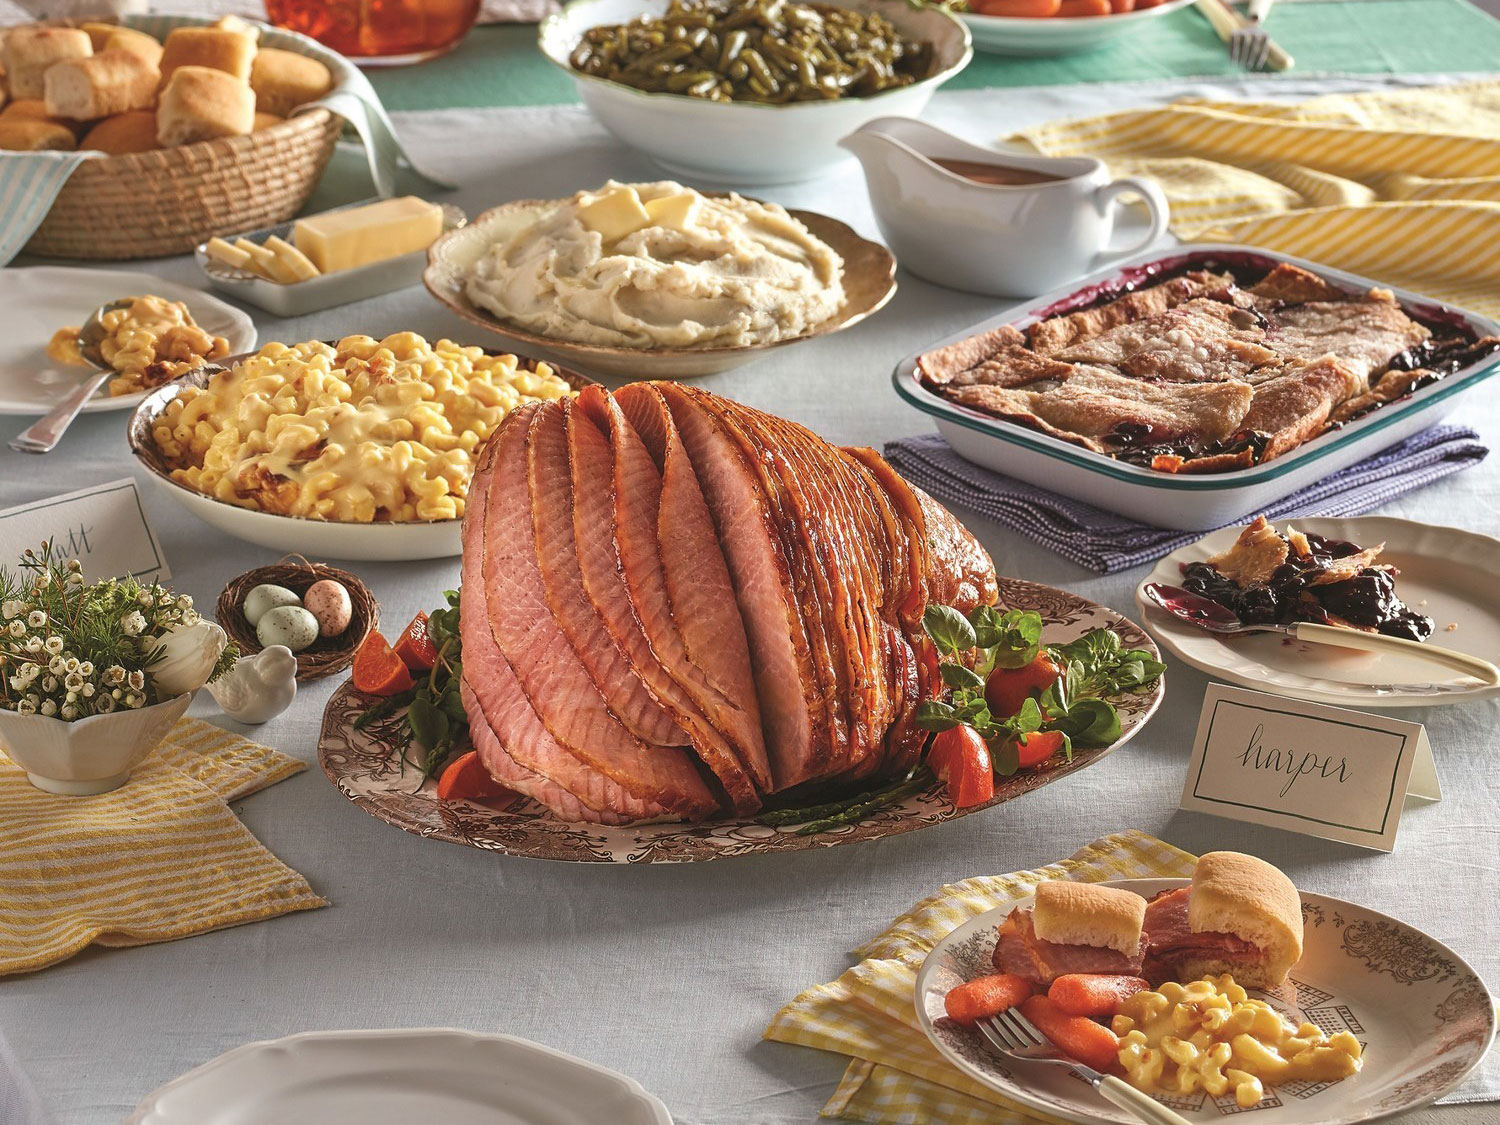 Cracker Barrel Gives Back to Military Families with Operation Homefront